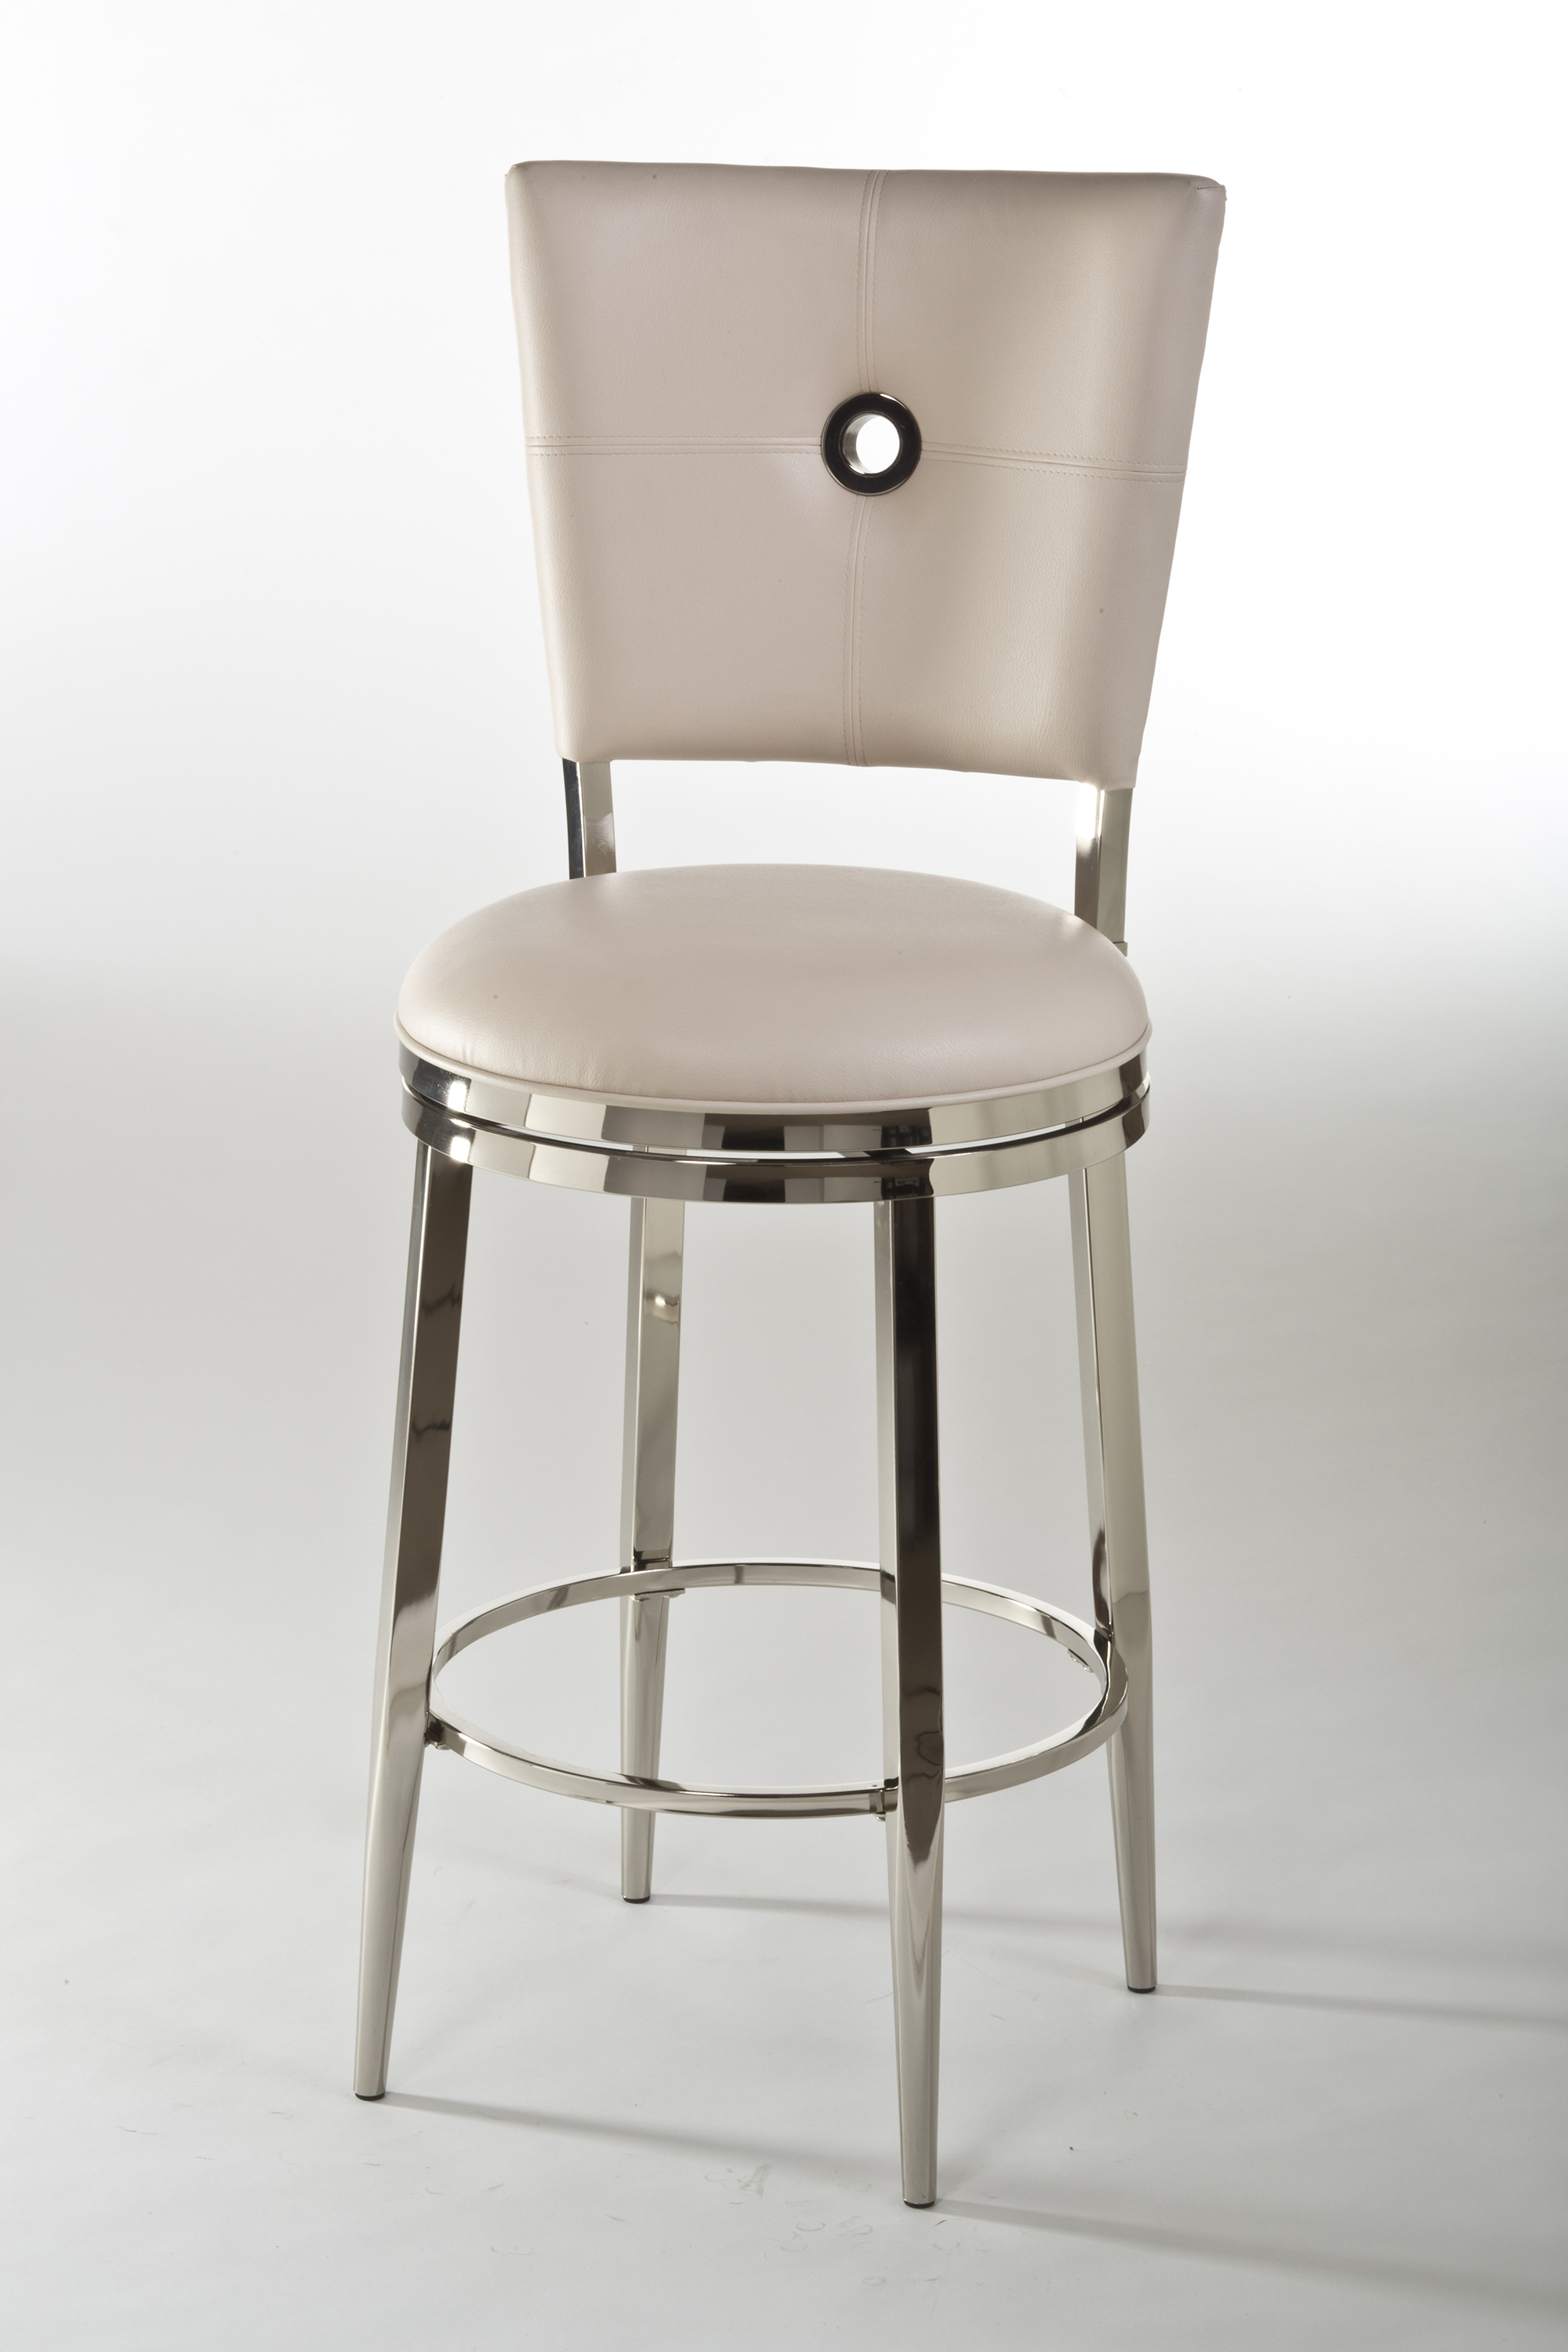 elegant cymax bar stools with antique white seat and back plus stainless steel legs for inspiring furniture ideas